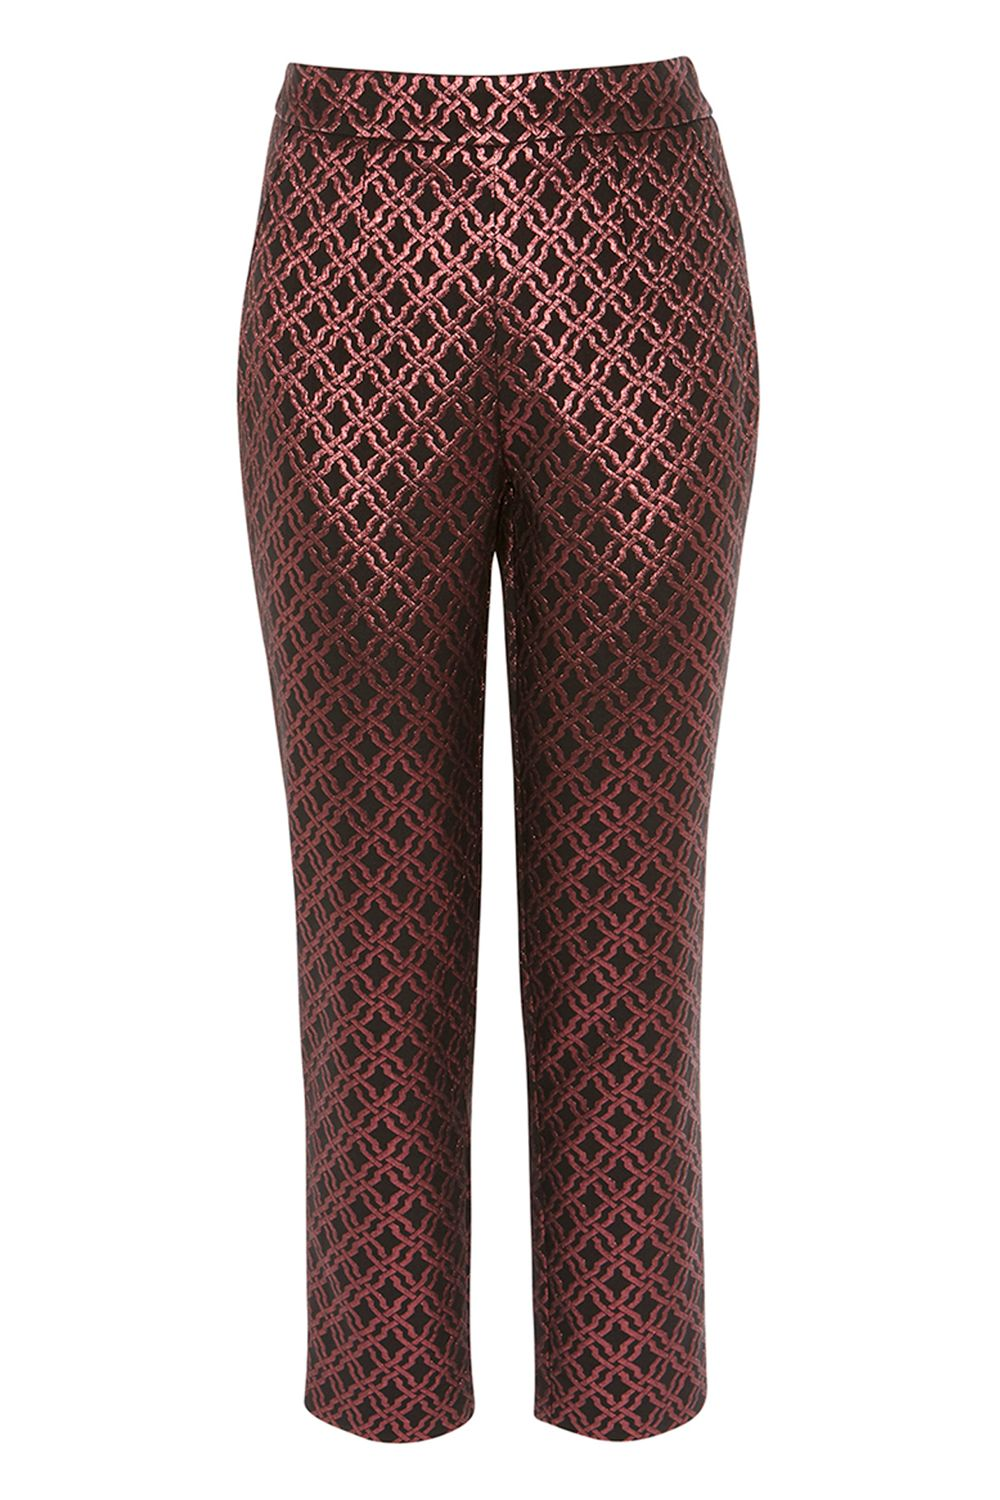 Coast Eve Jacquard Trouser, Multi-Coloured